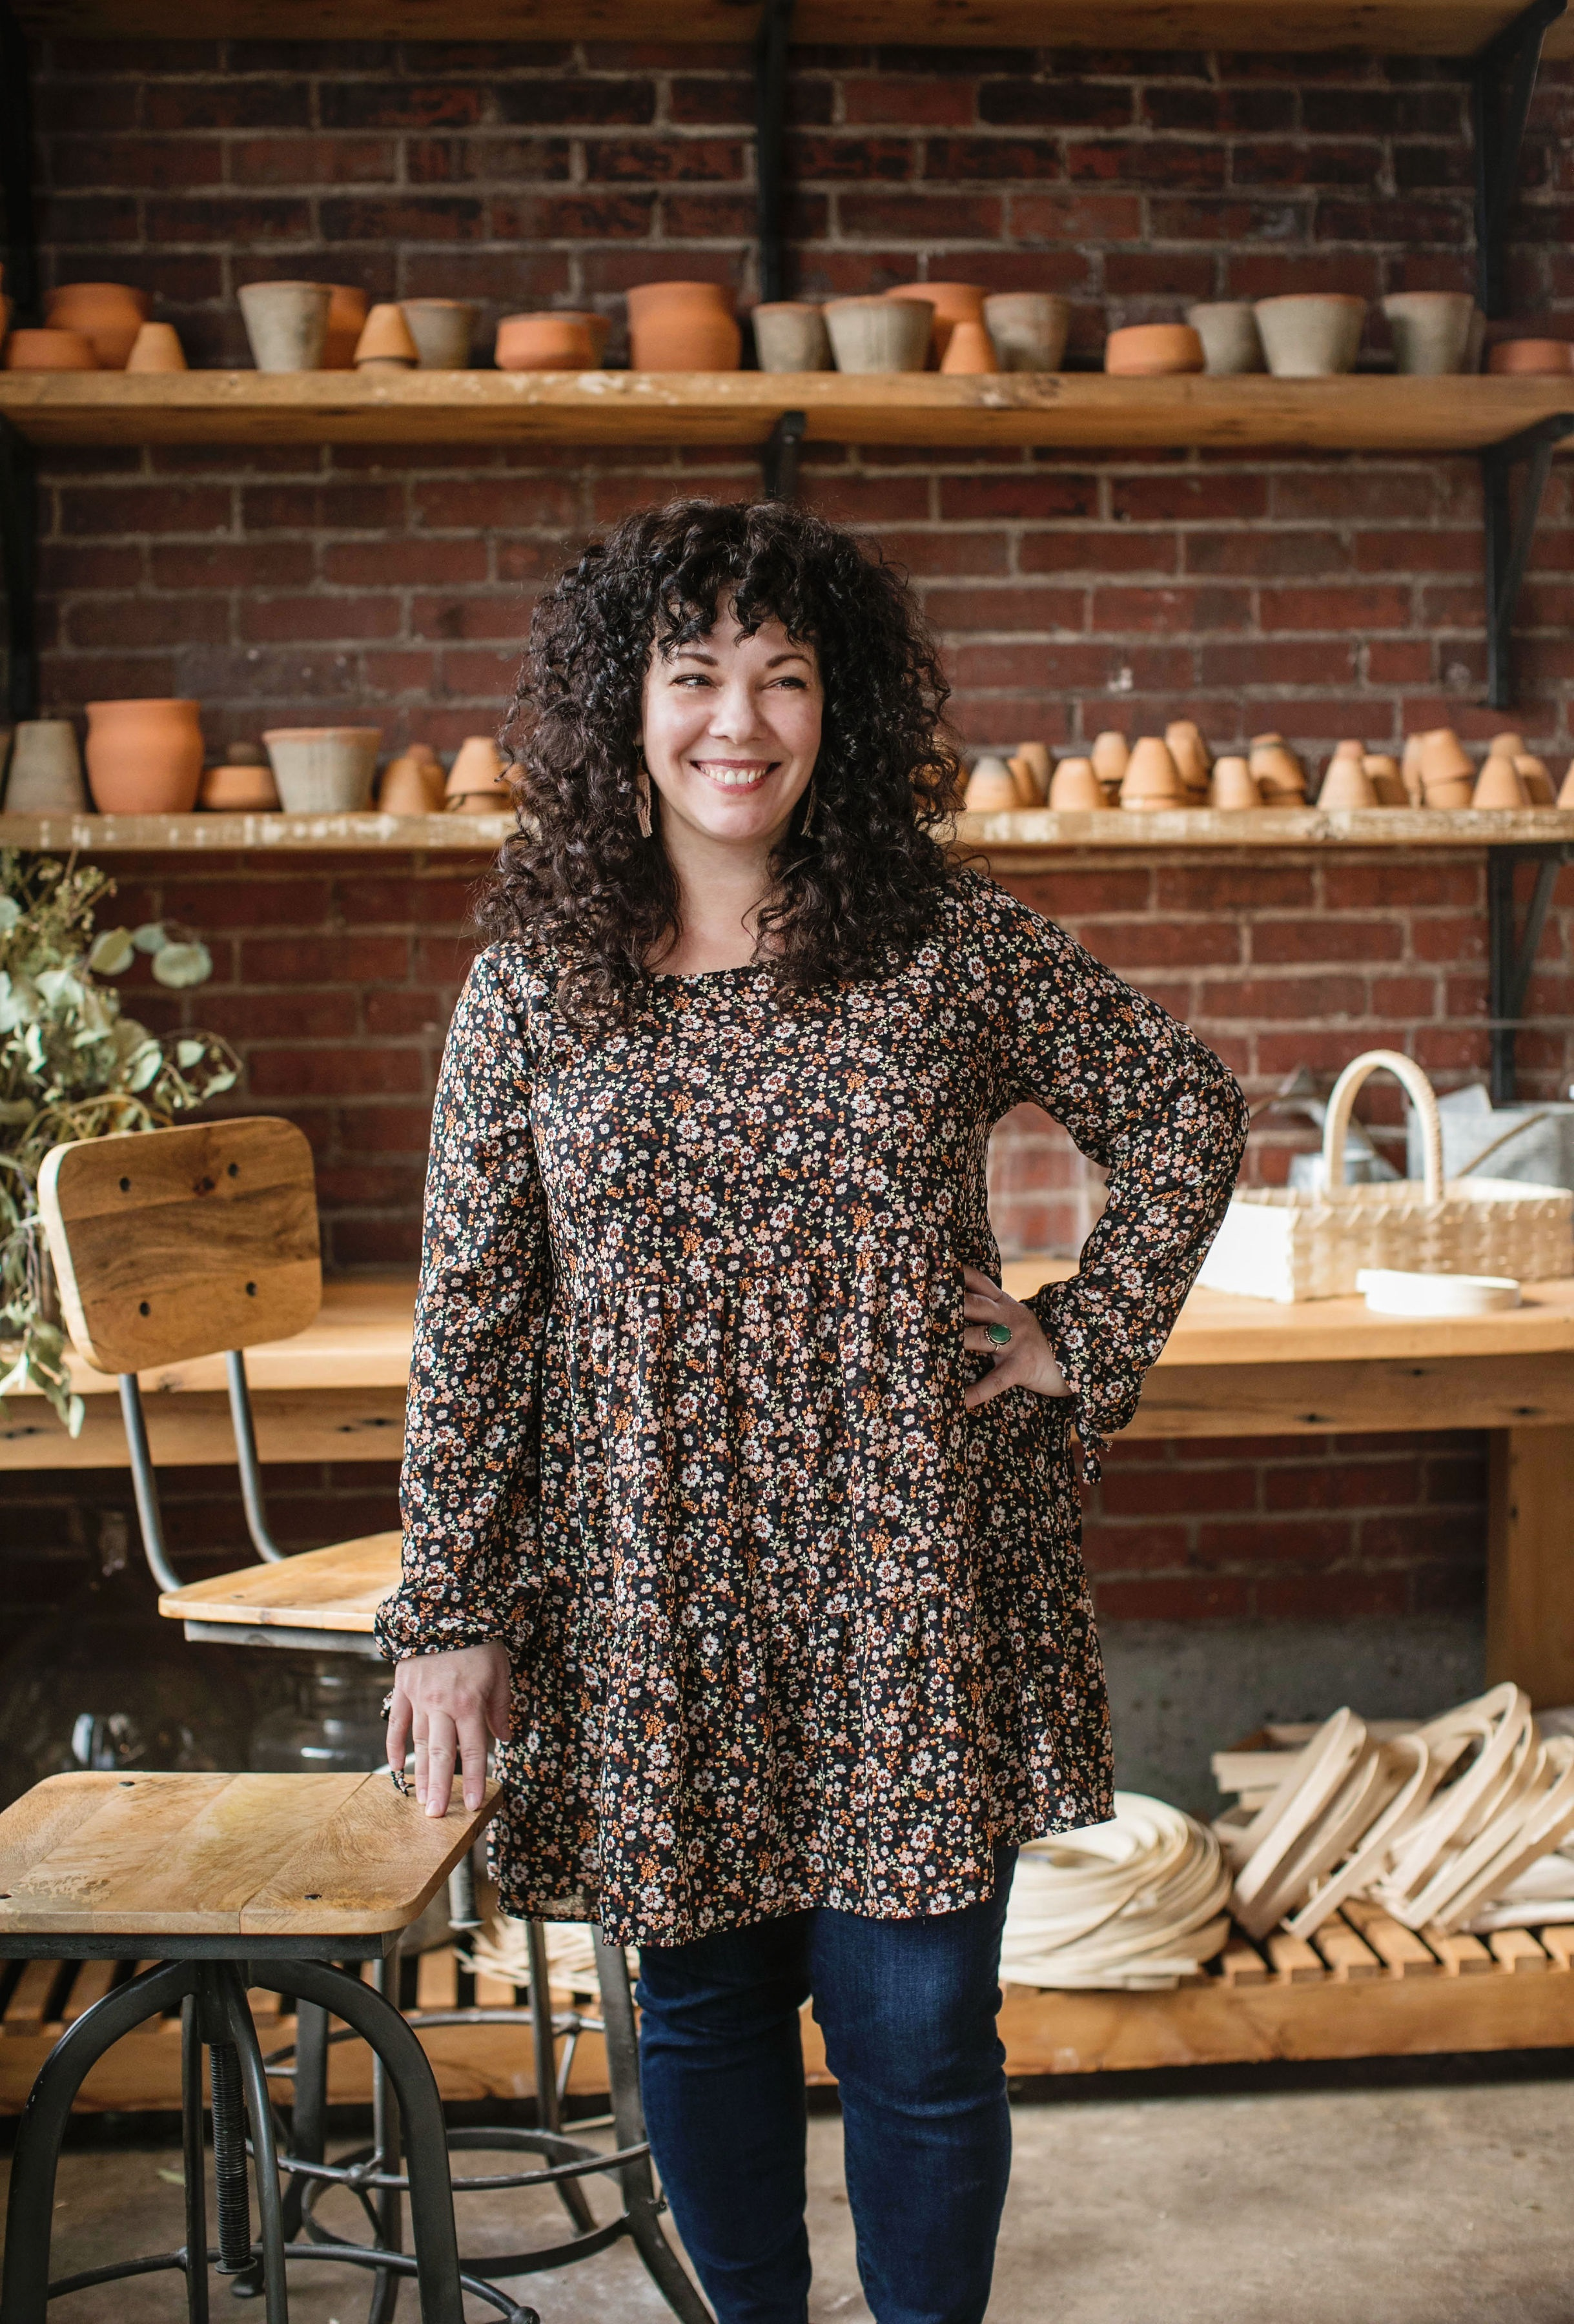 A figure with dark curly hair stands and smiles in front of shelves filled with ceramic artwork